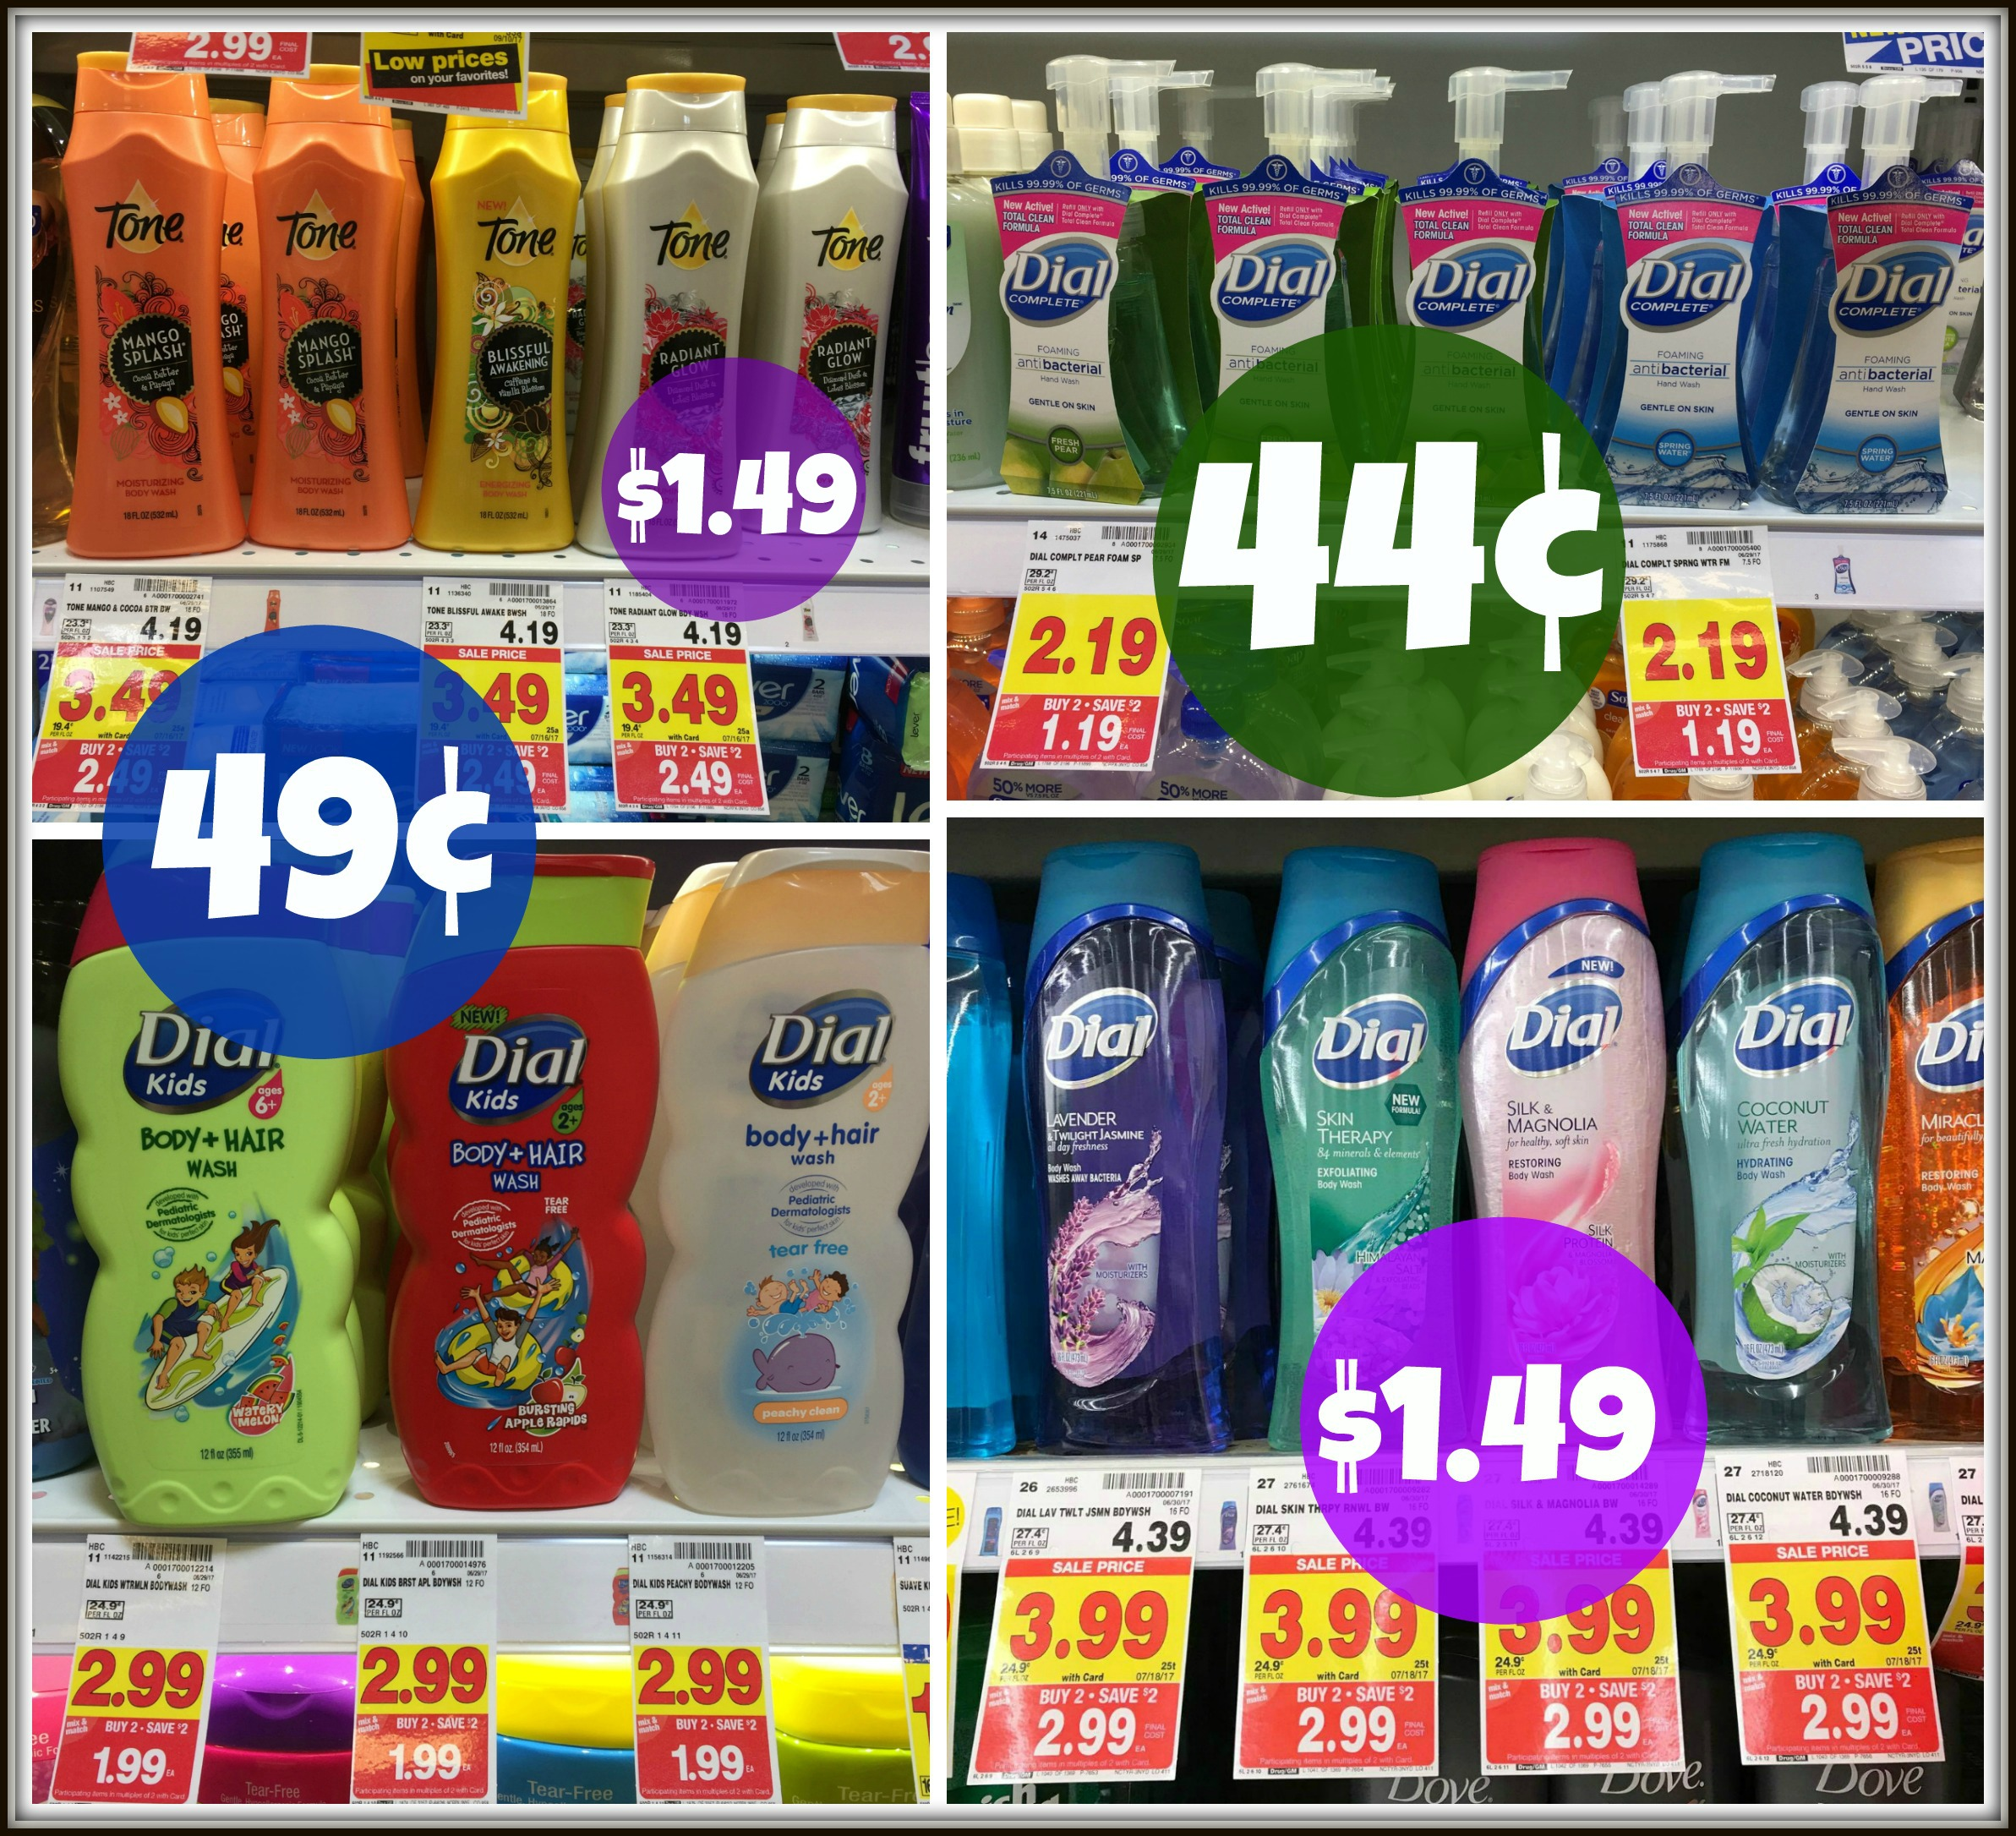 photograph regarding Dial Printable Coupon called Fresh Dial and Tone Discount codes \u003d Foaming Hand Clean Merely $0.44